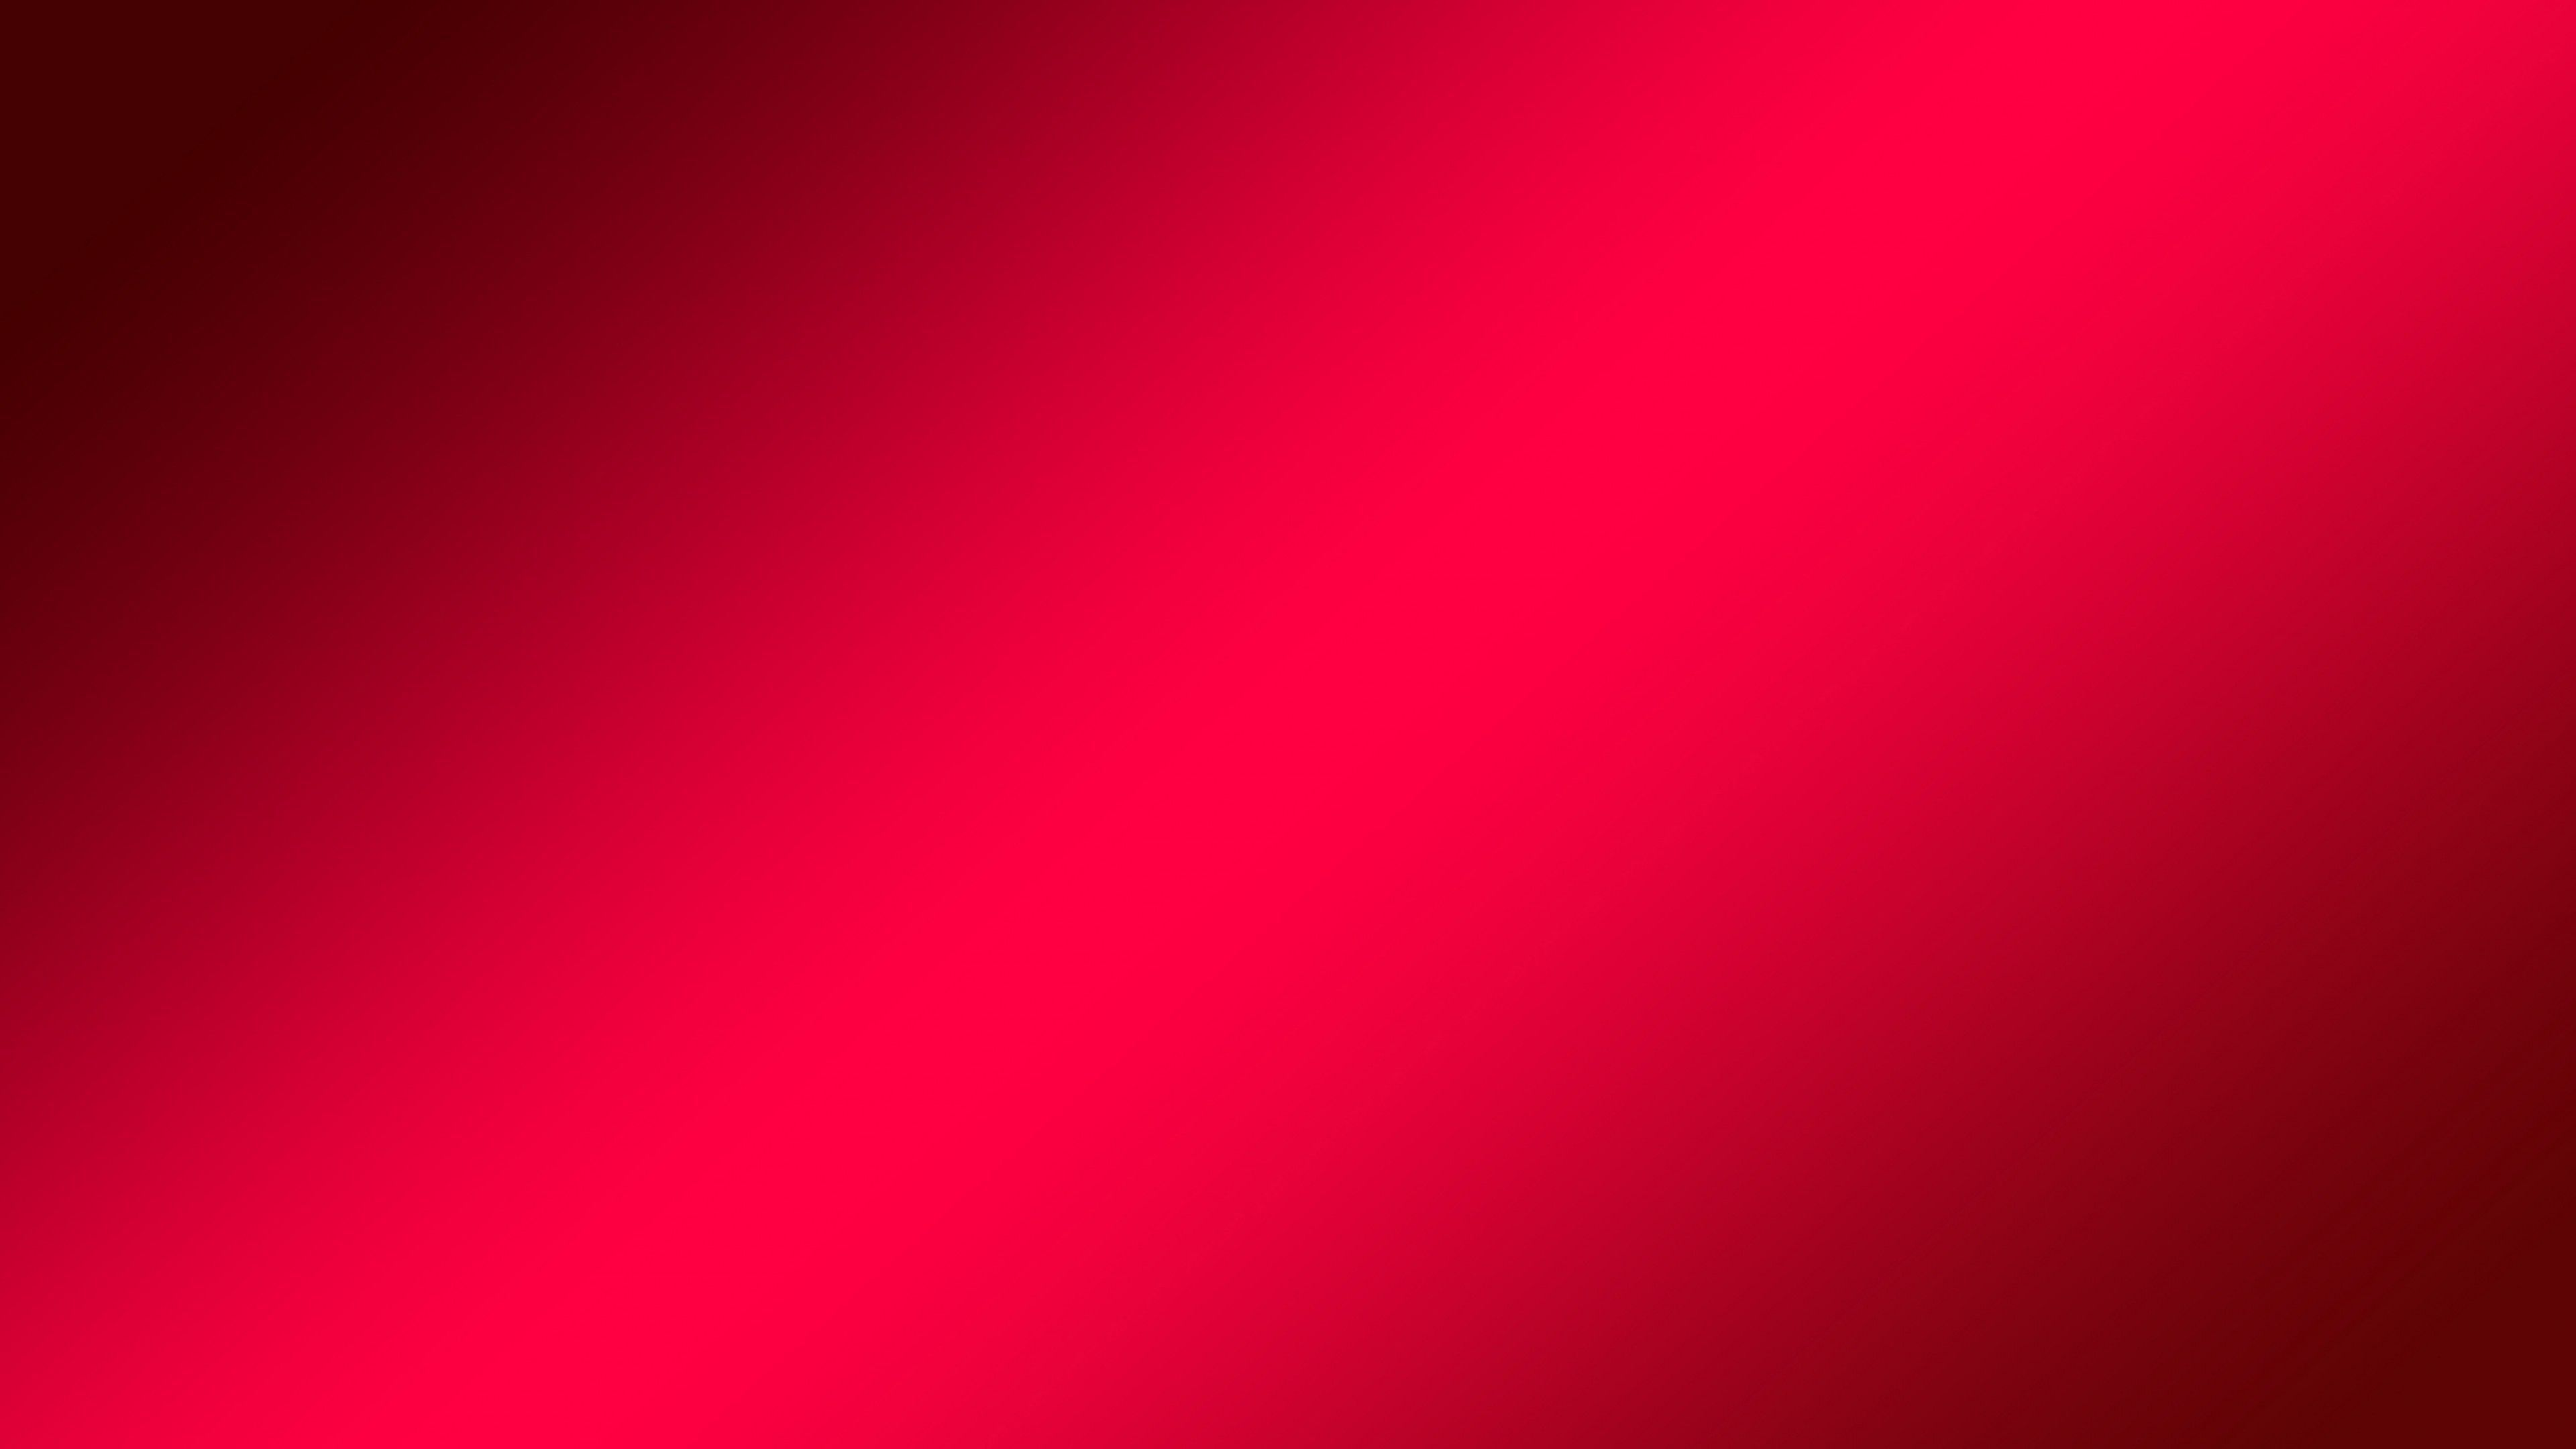 30 Red Gradient Wallpapers Download At Wallpaperbro Background Images Red Background Images Free Background Images